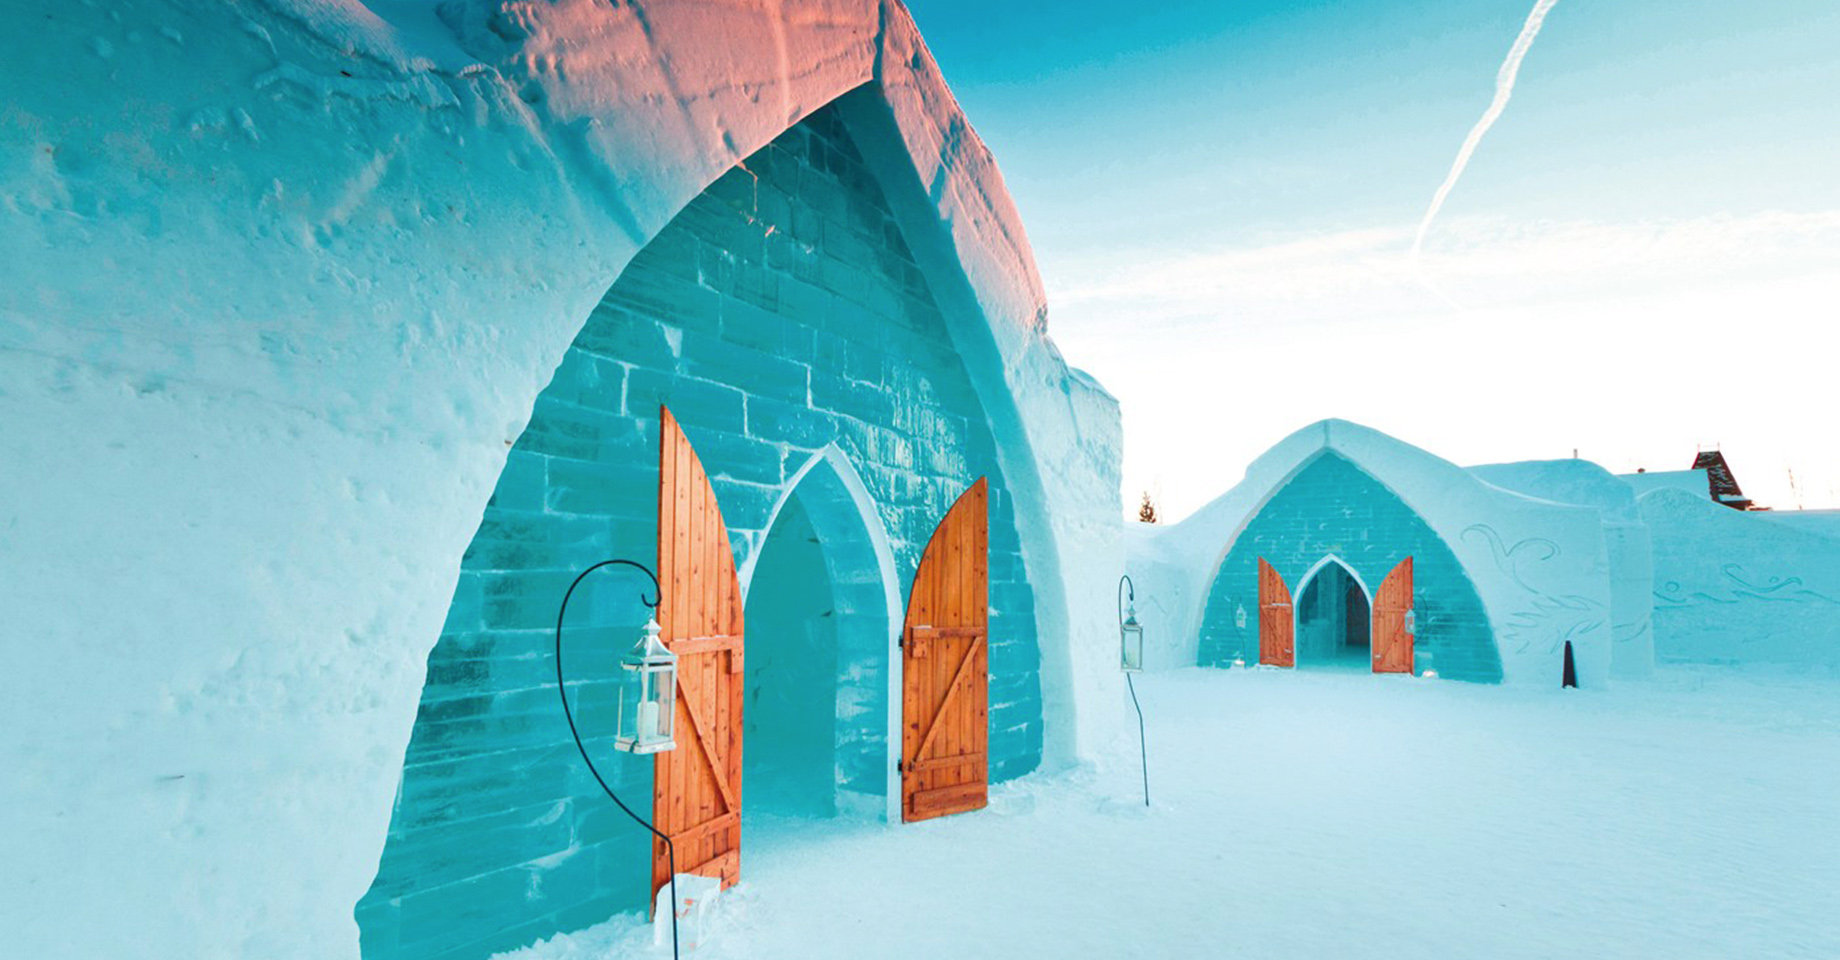 The Hotel de Glace in Quebec